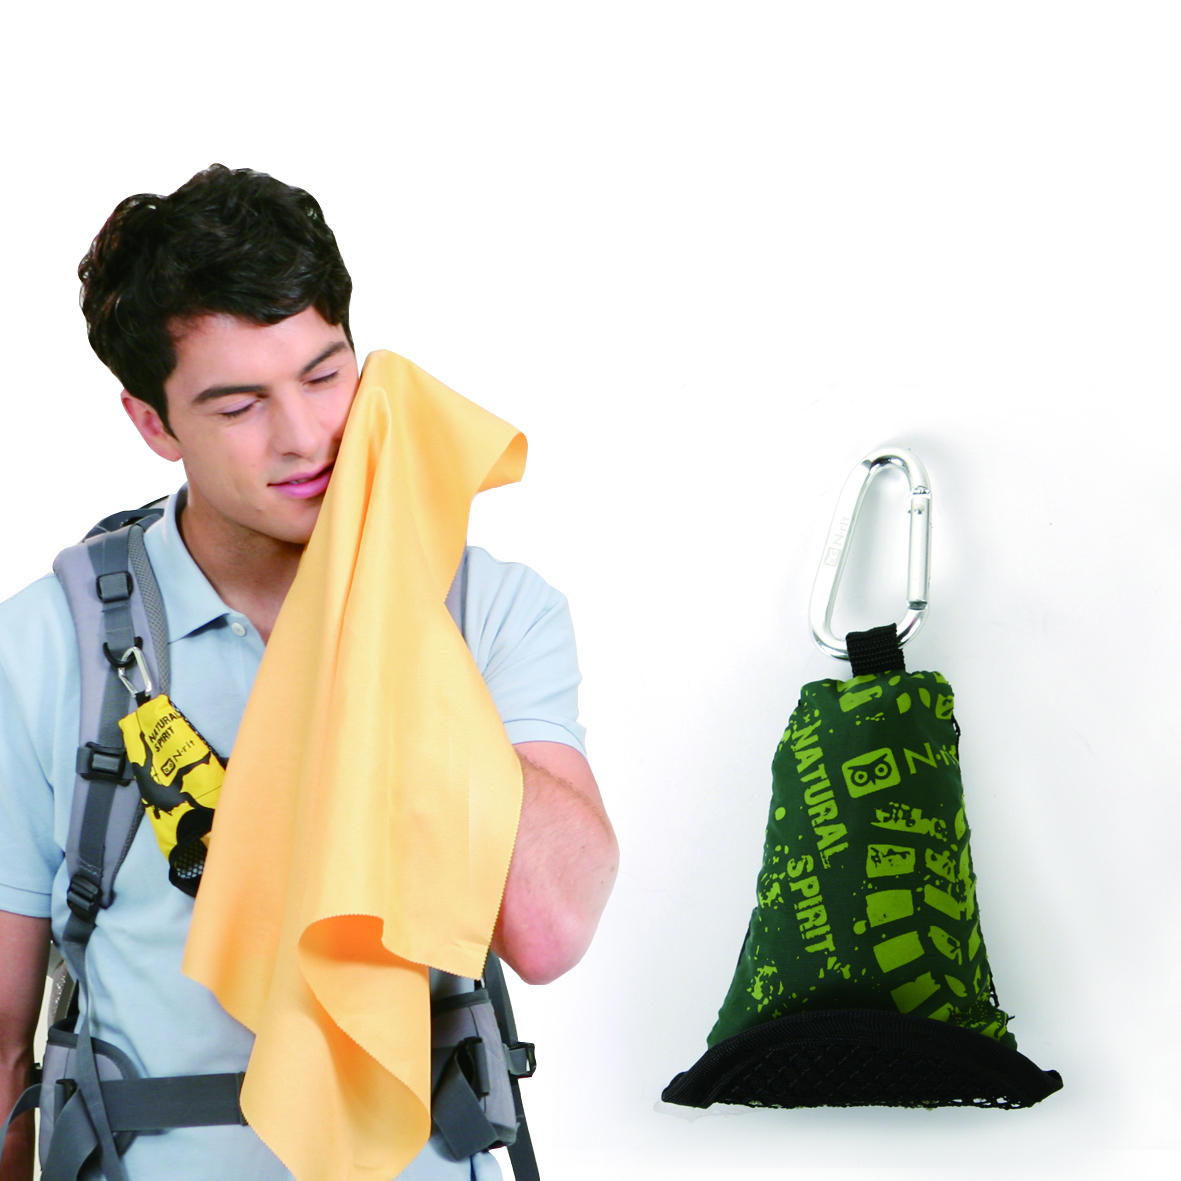 N-Rit [Green] Campack Medium Cleaner 15.7x15.7(40x40cm) Microfiber Cloth - Perfect for Hiking!